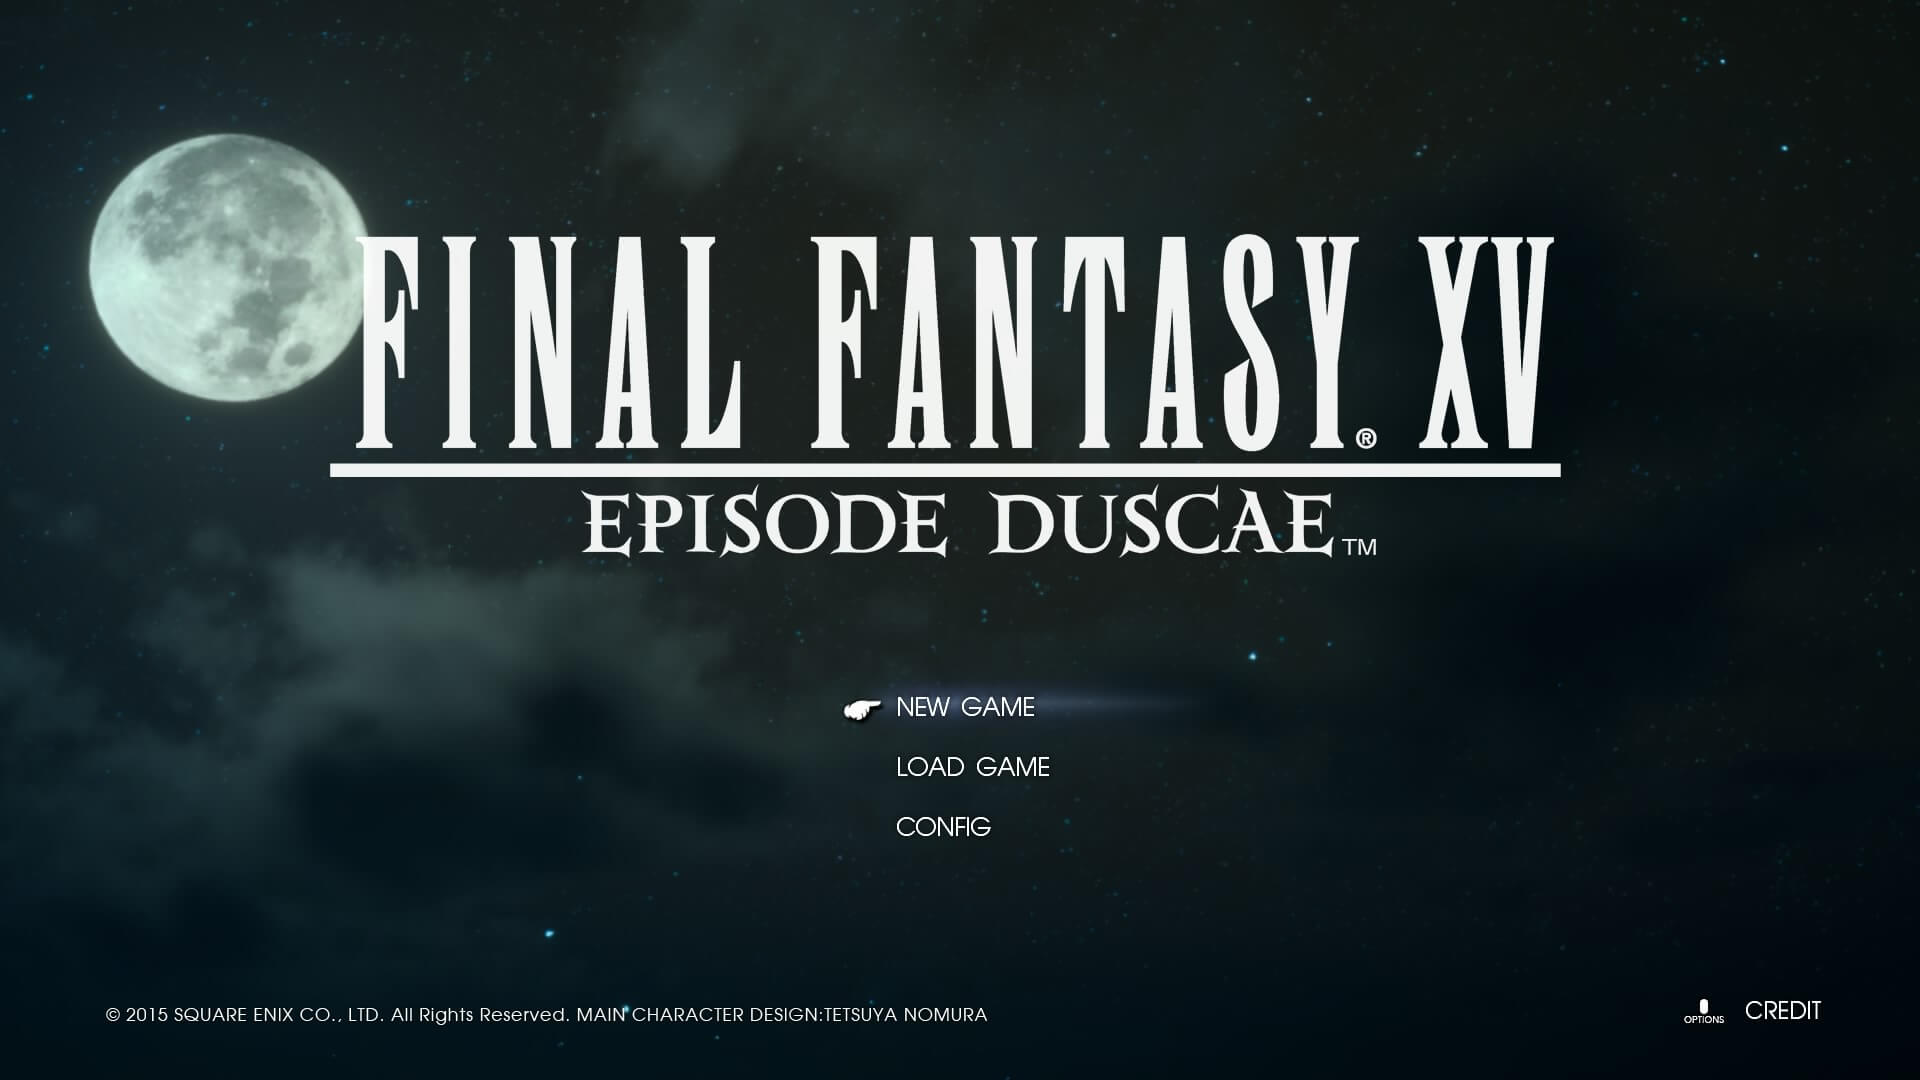 FINAL FANTASY XV EPISODE DUSCAE_20150320164306